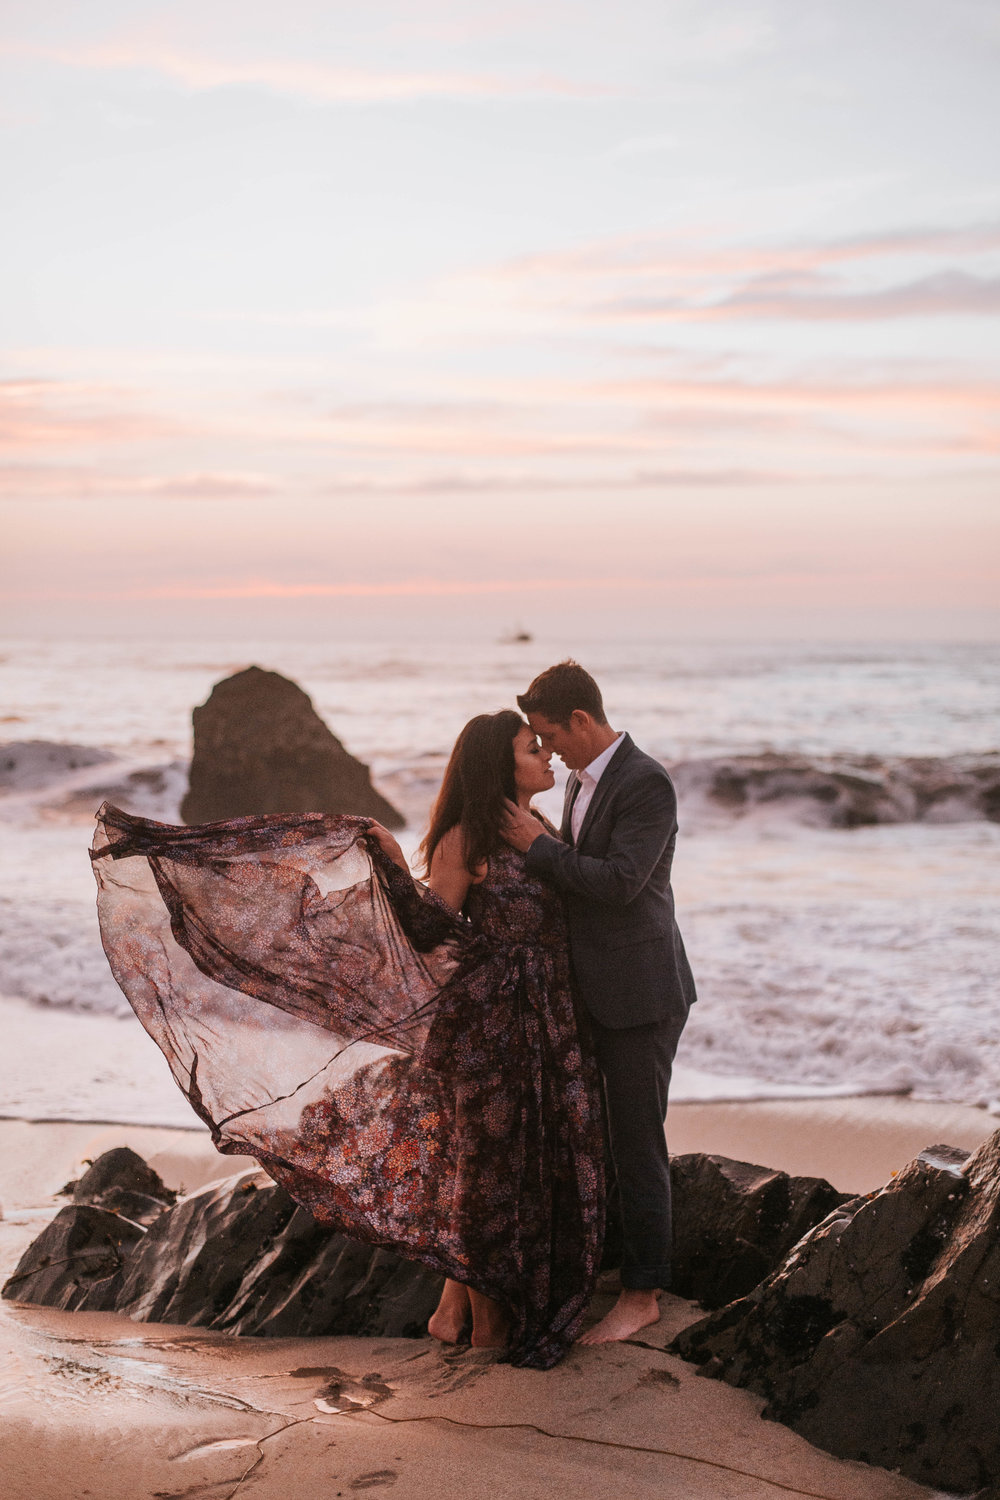 nicole-daacke-photography-big-sur-california-coast-adventure-engagement-photos-adventurous-elopement-intimate-wedding-photographer-golden-coastal-cali-engagement-session-34.jpg